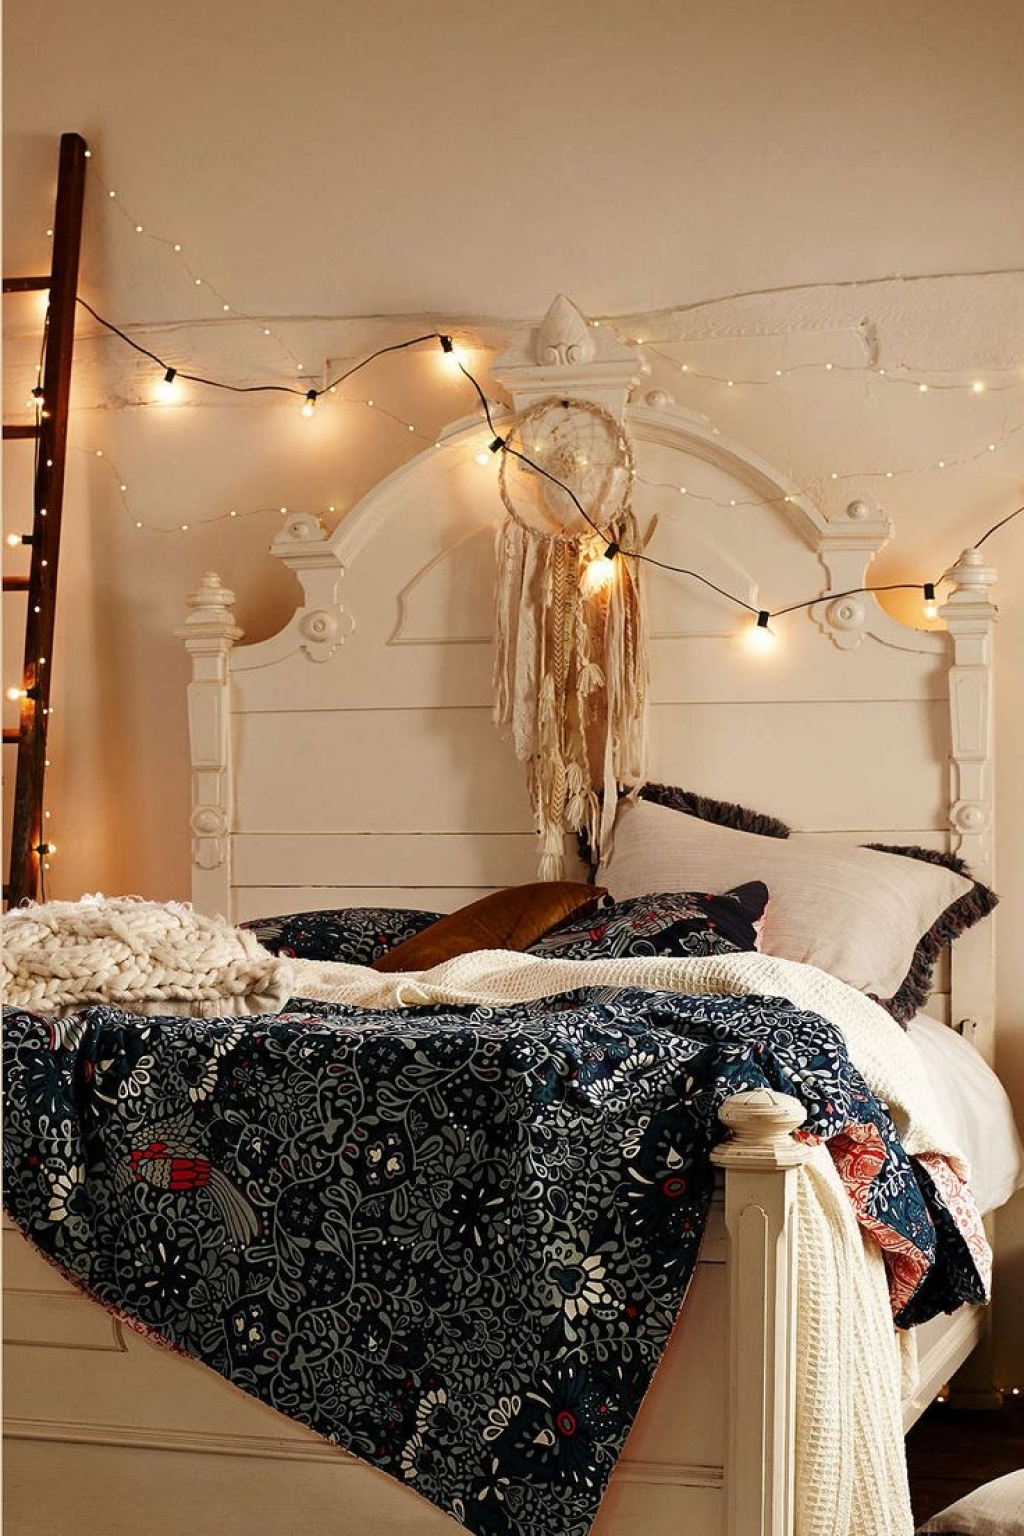 30 ways to create a romantic ambiance with string lights. Black Bedroom Furniture Sets. Home Design Ideas